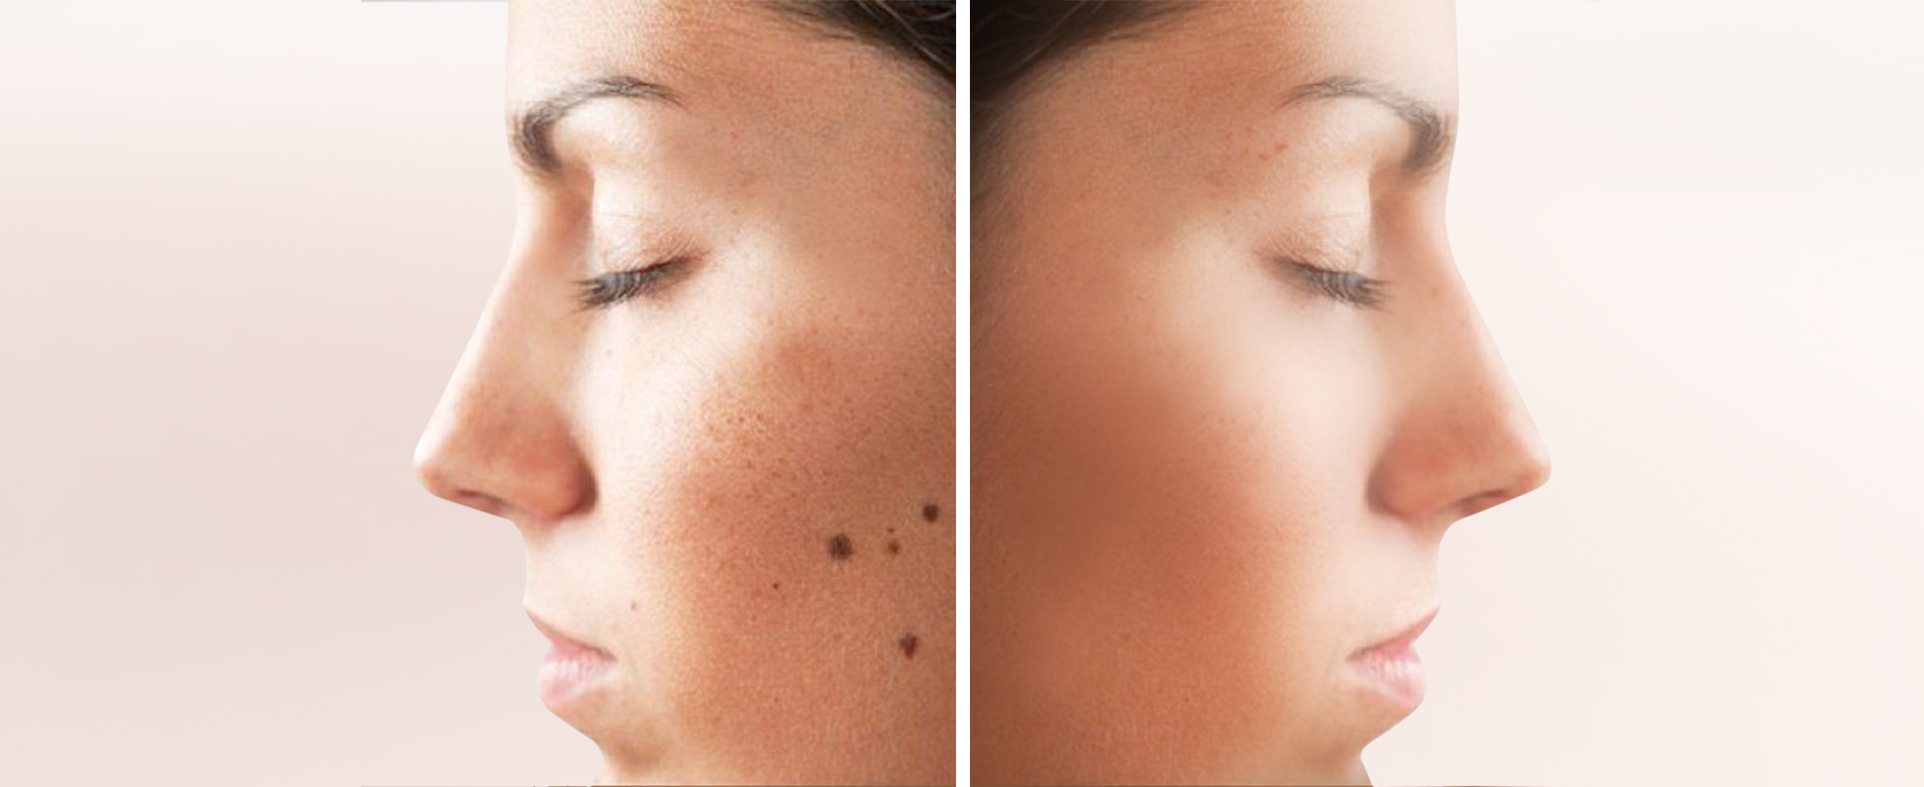 Permanent Tattoo and Mole Removal Treatment Clinic